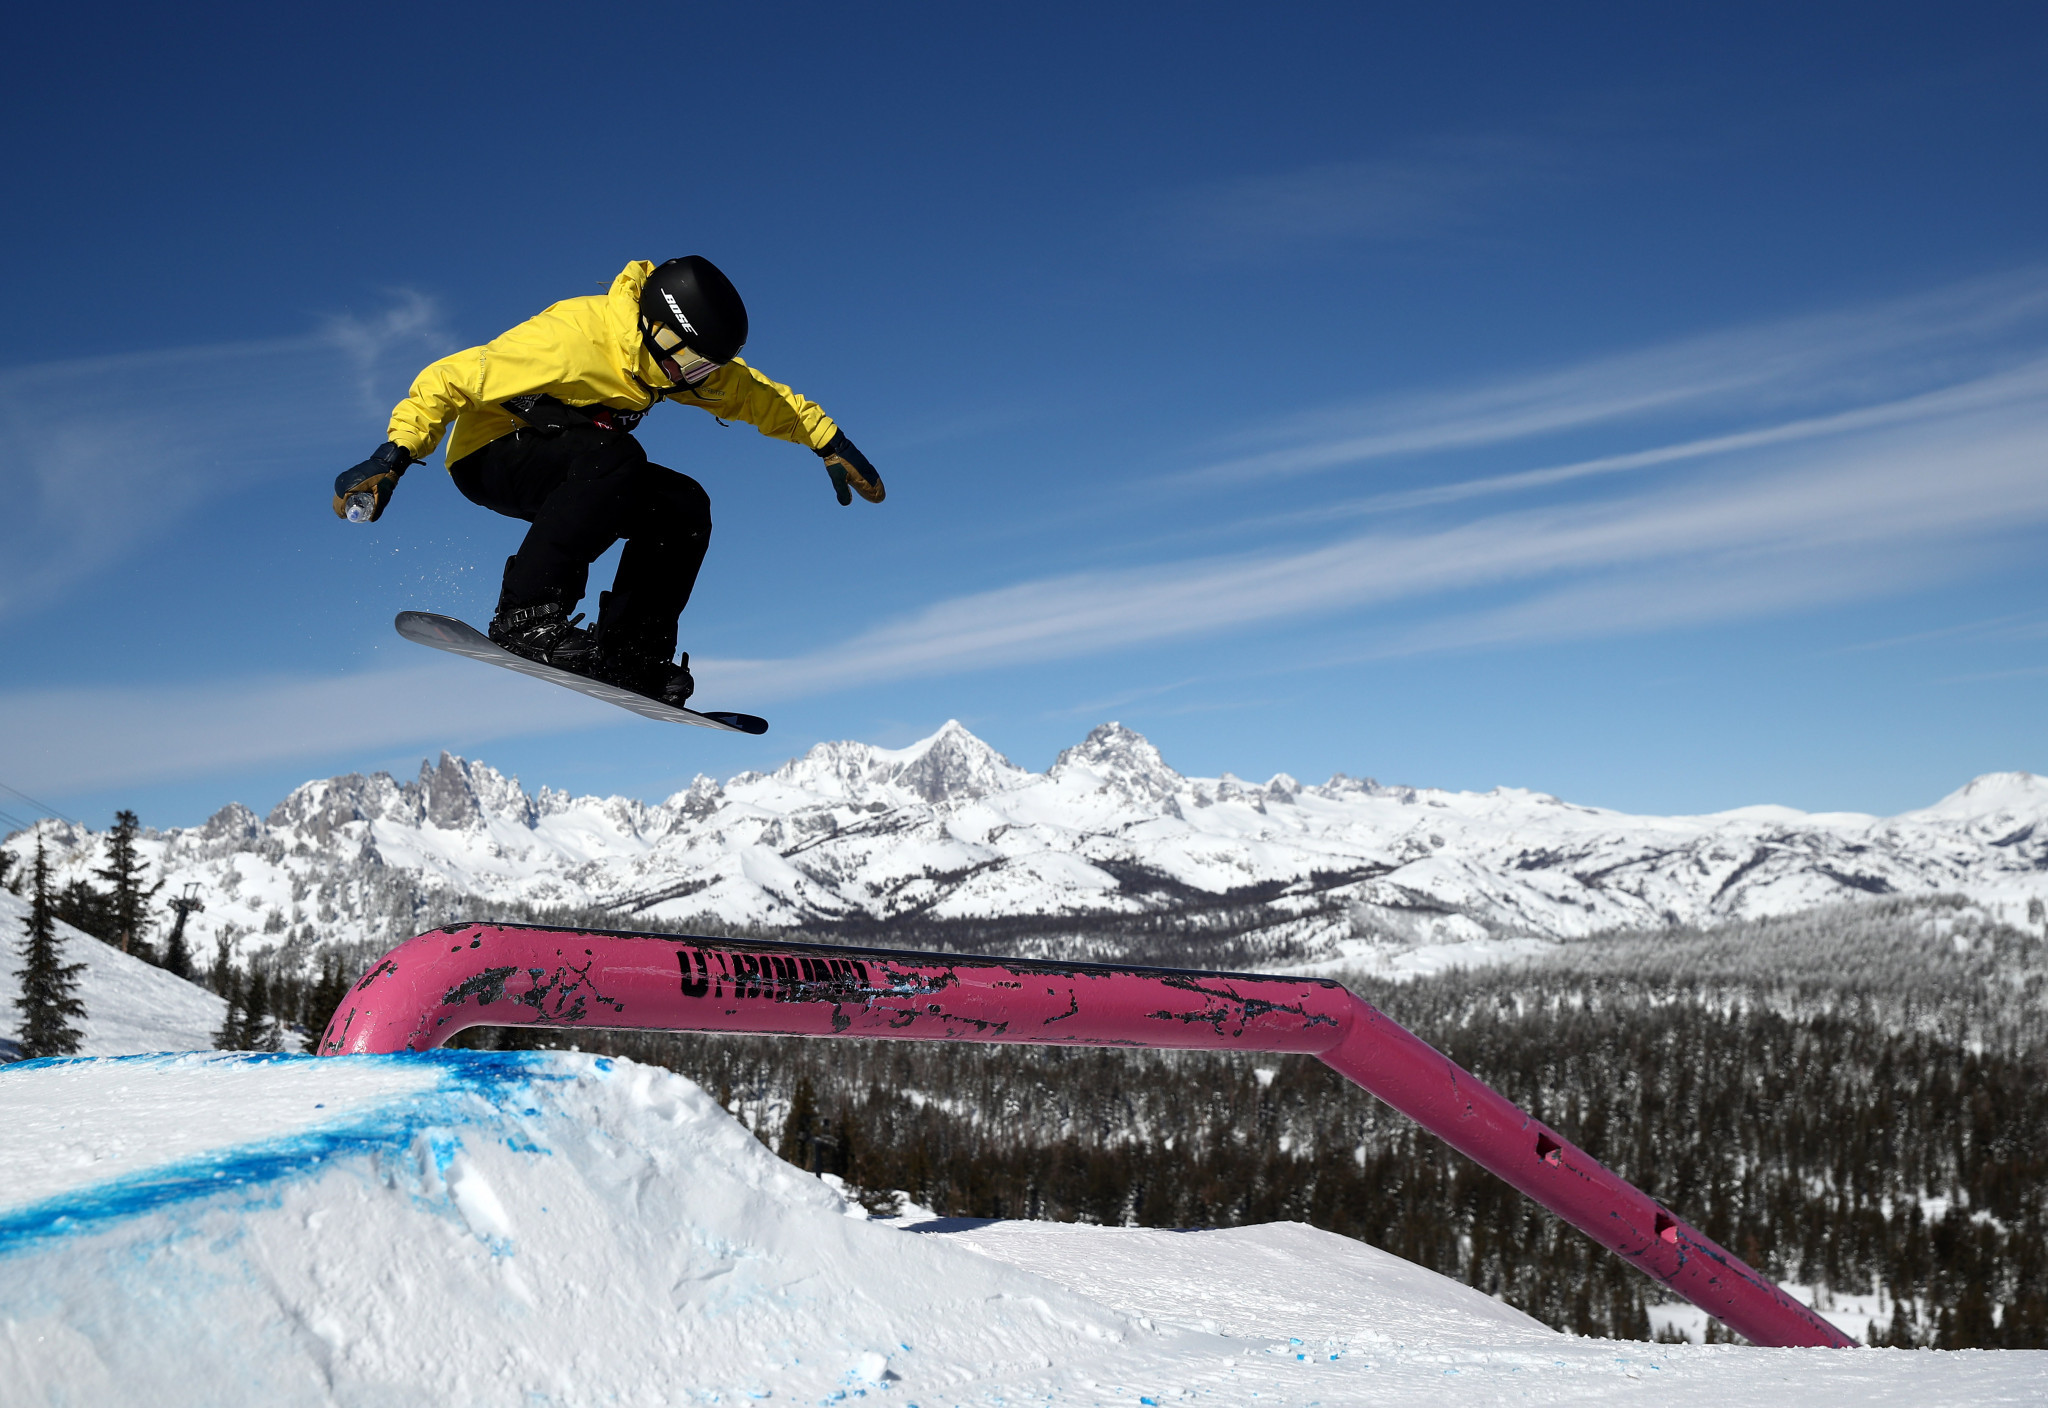 Olympic champion Gerard leads slopestyle qualifiers at Snowboard World Cup in Laax